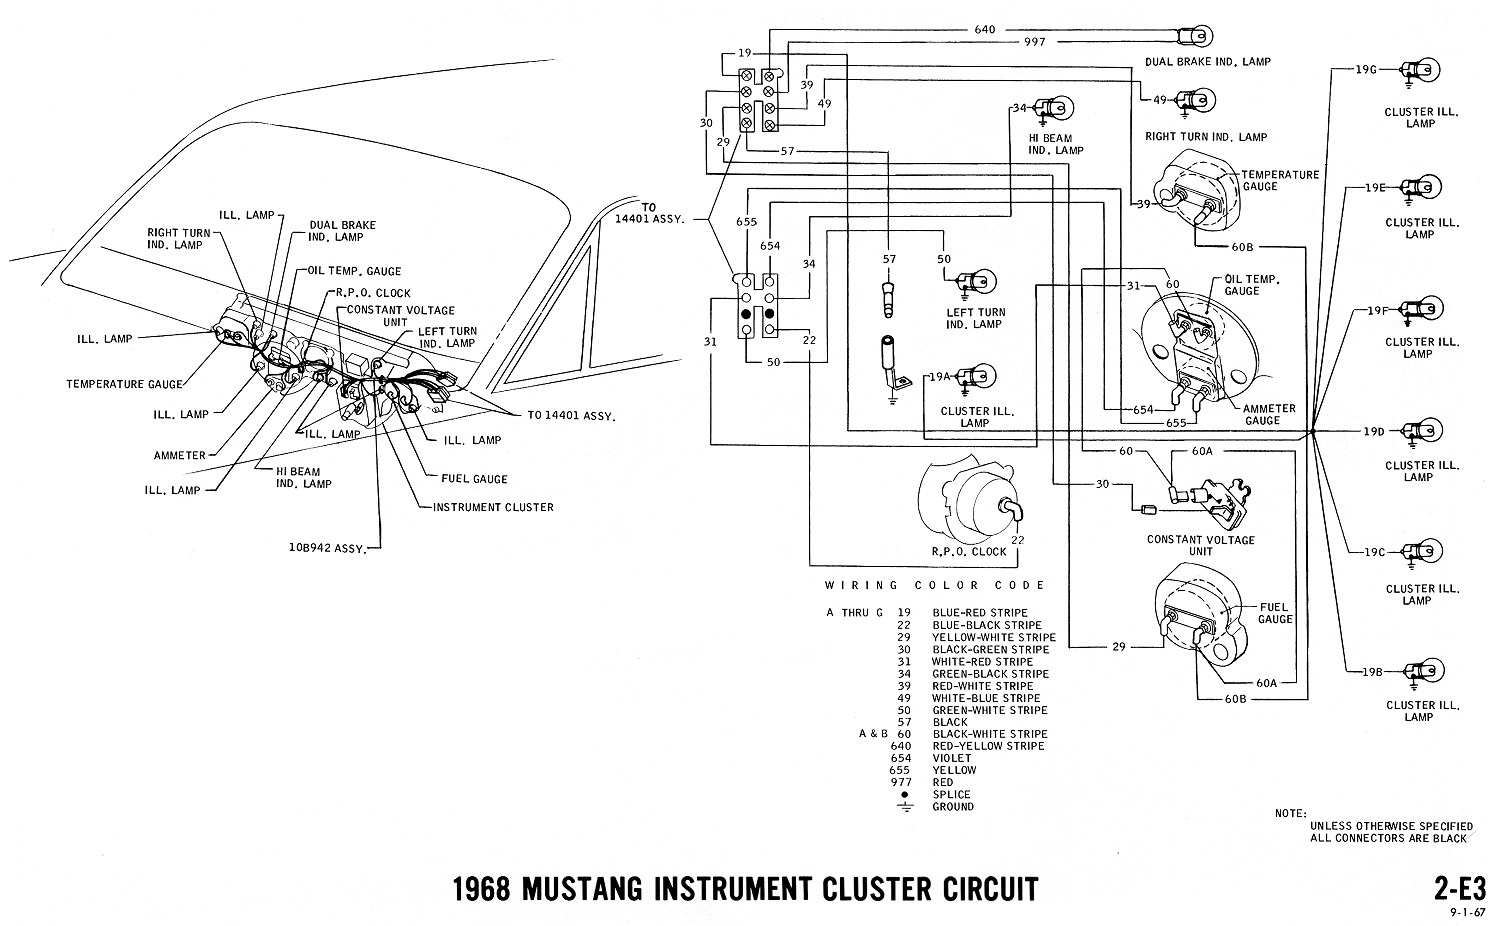 1968 mustang wiring diagrams and vacuum schematics average joe rh  averagejoerestoration com 67 GTO Engine Wiring Diagram 67 Pontiac GTO Wiring -Diagram